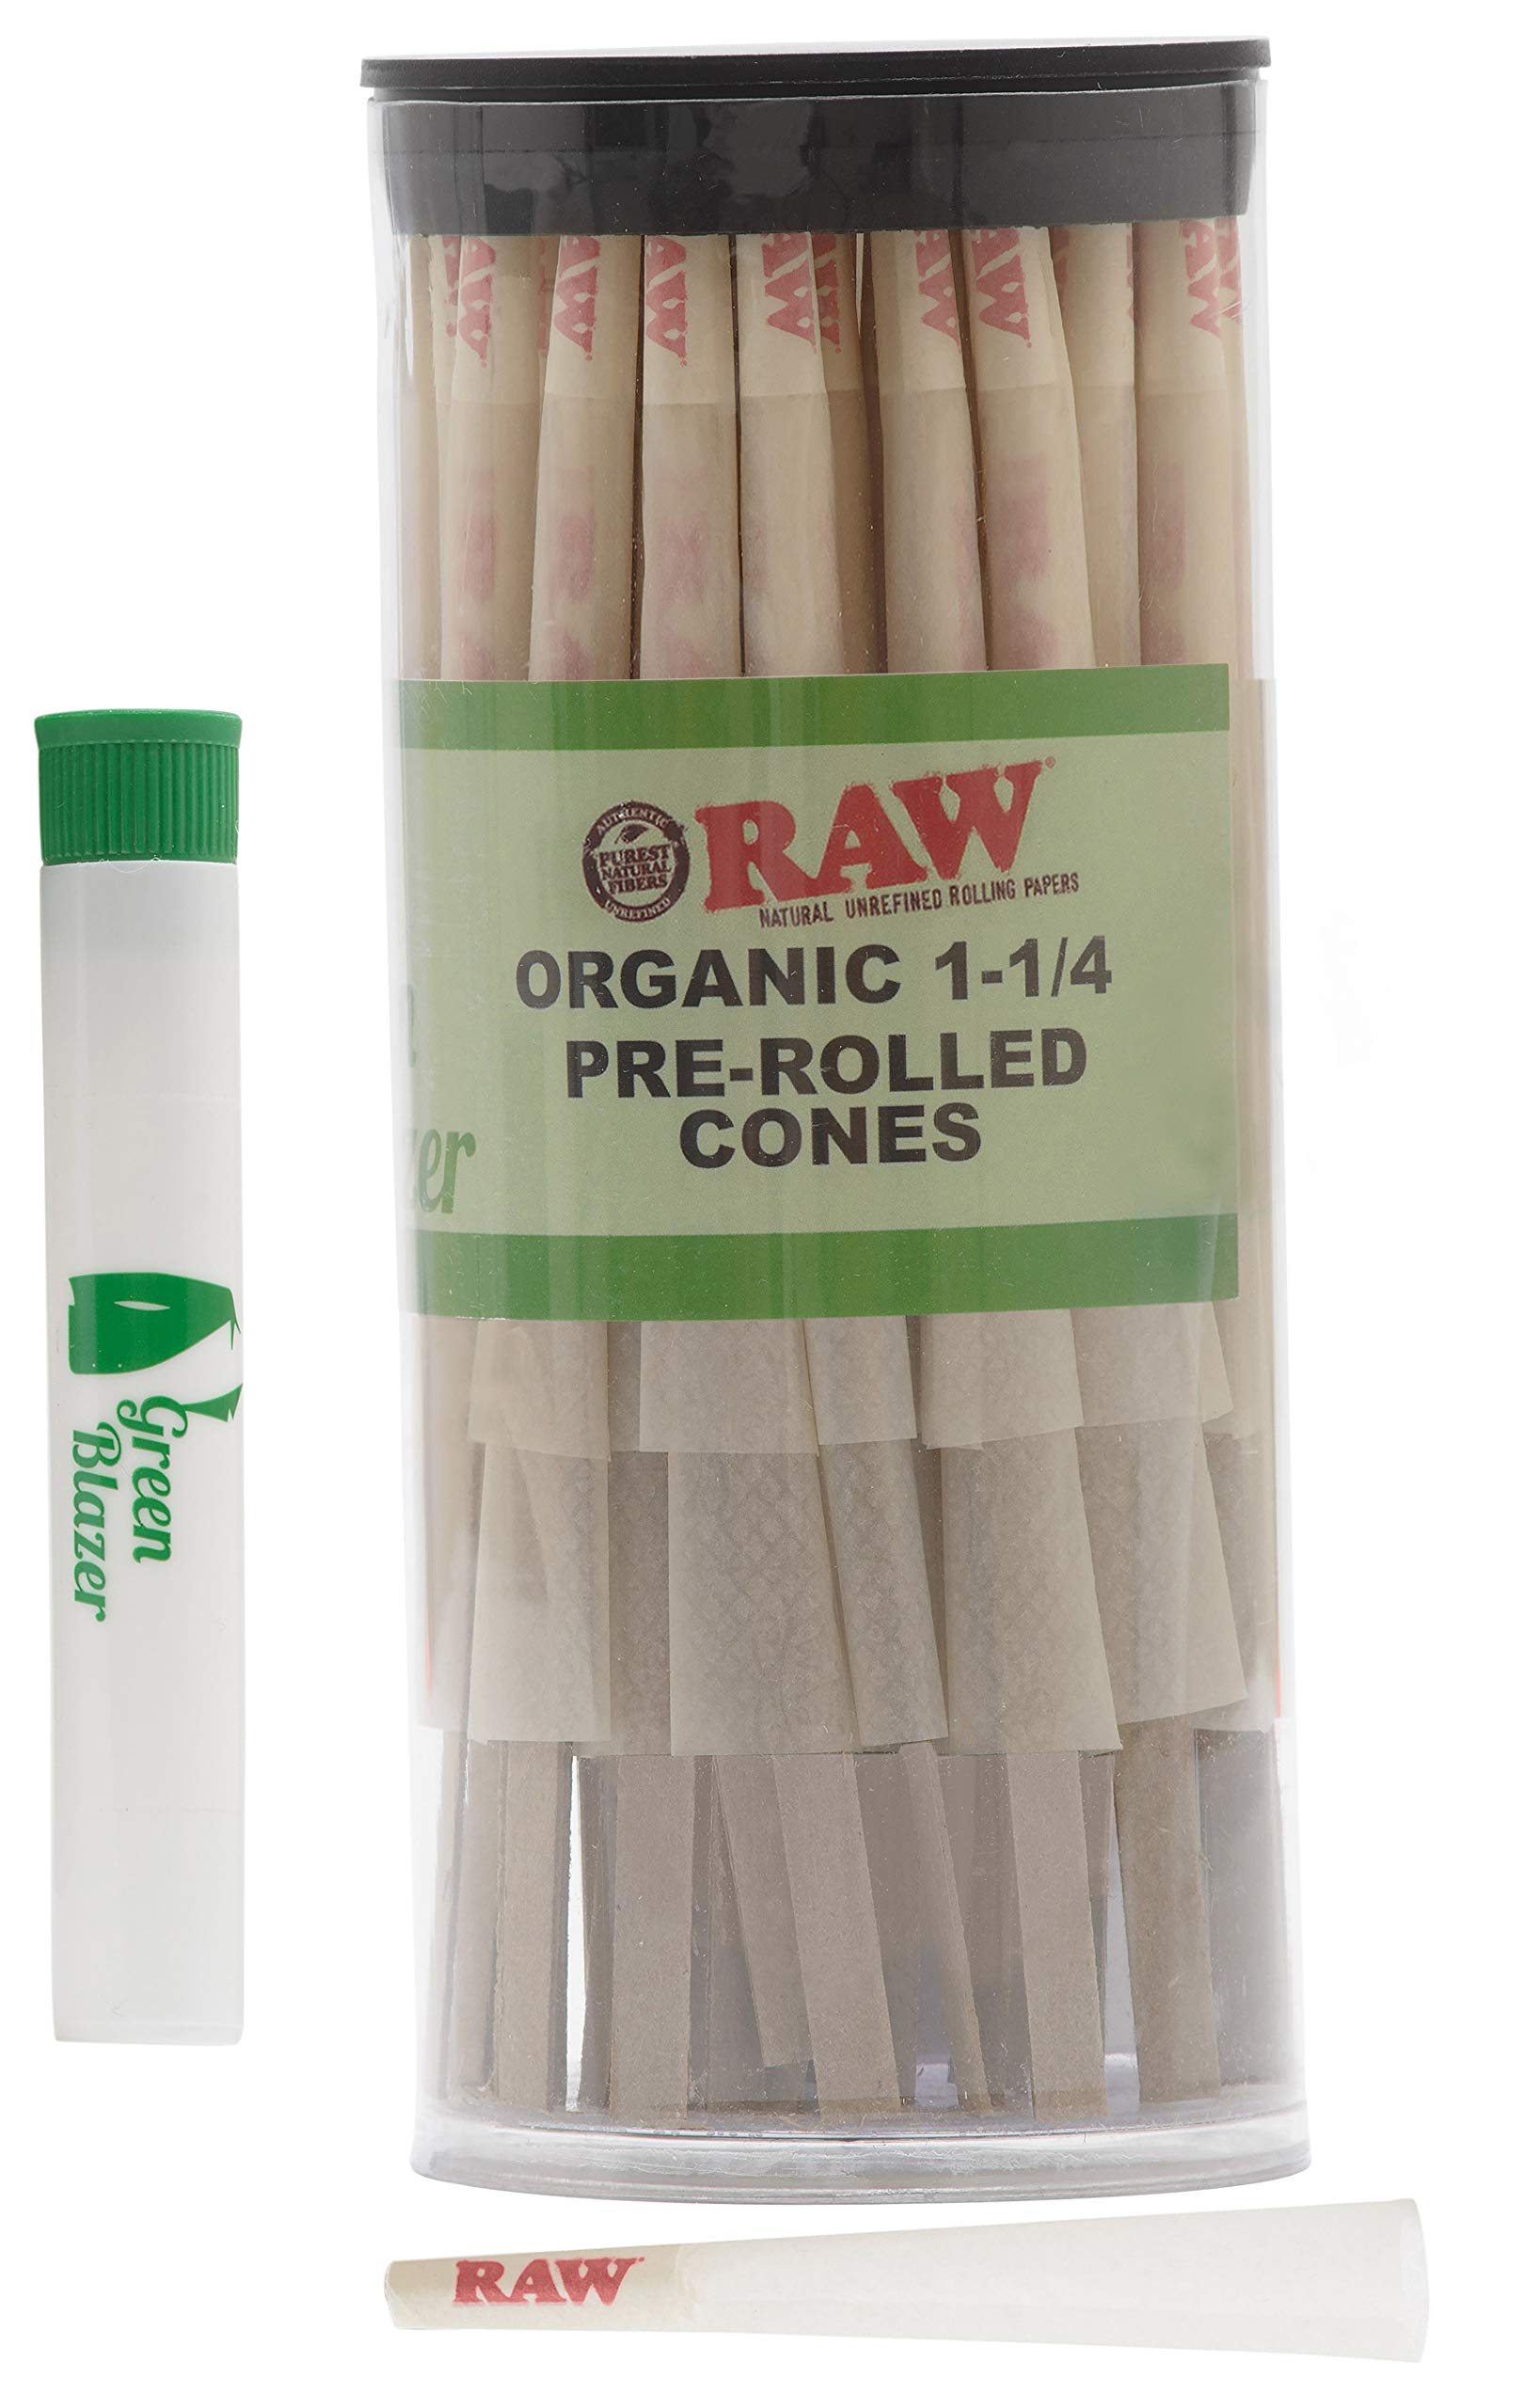 Raw Pre-Rolled Cones Organic 1 1/4: 100 Pack - Hemp Rolling Papers with Filters - Extra Clean and Slow Burning Cone Made of Pure Hemp - Doob Tube Included by Raw, The Green Blazer